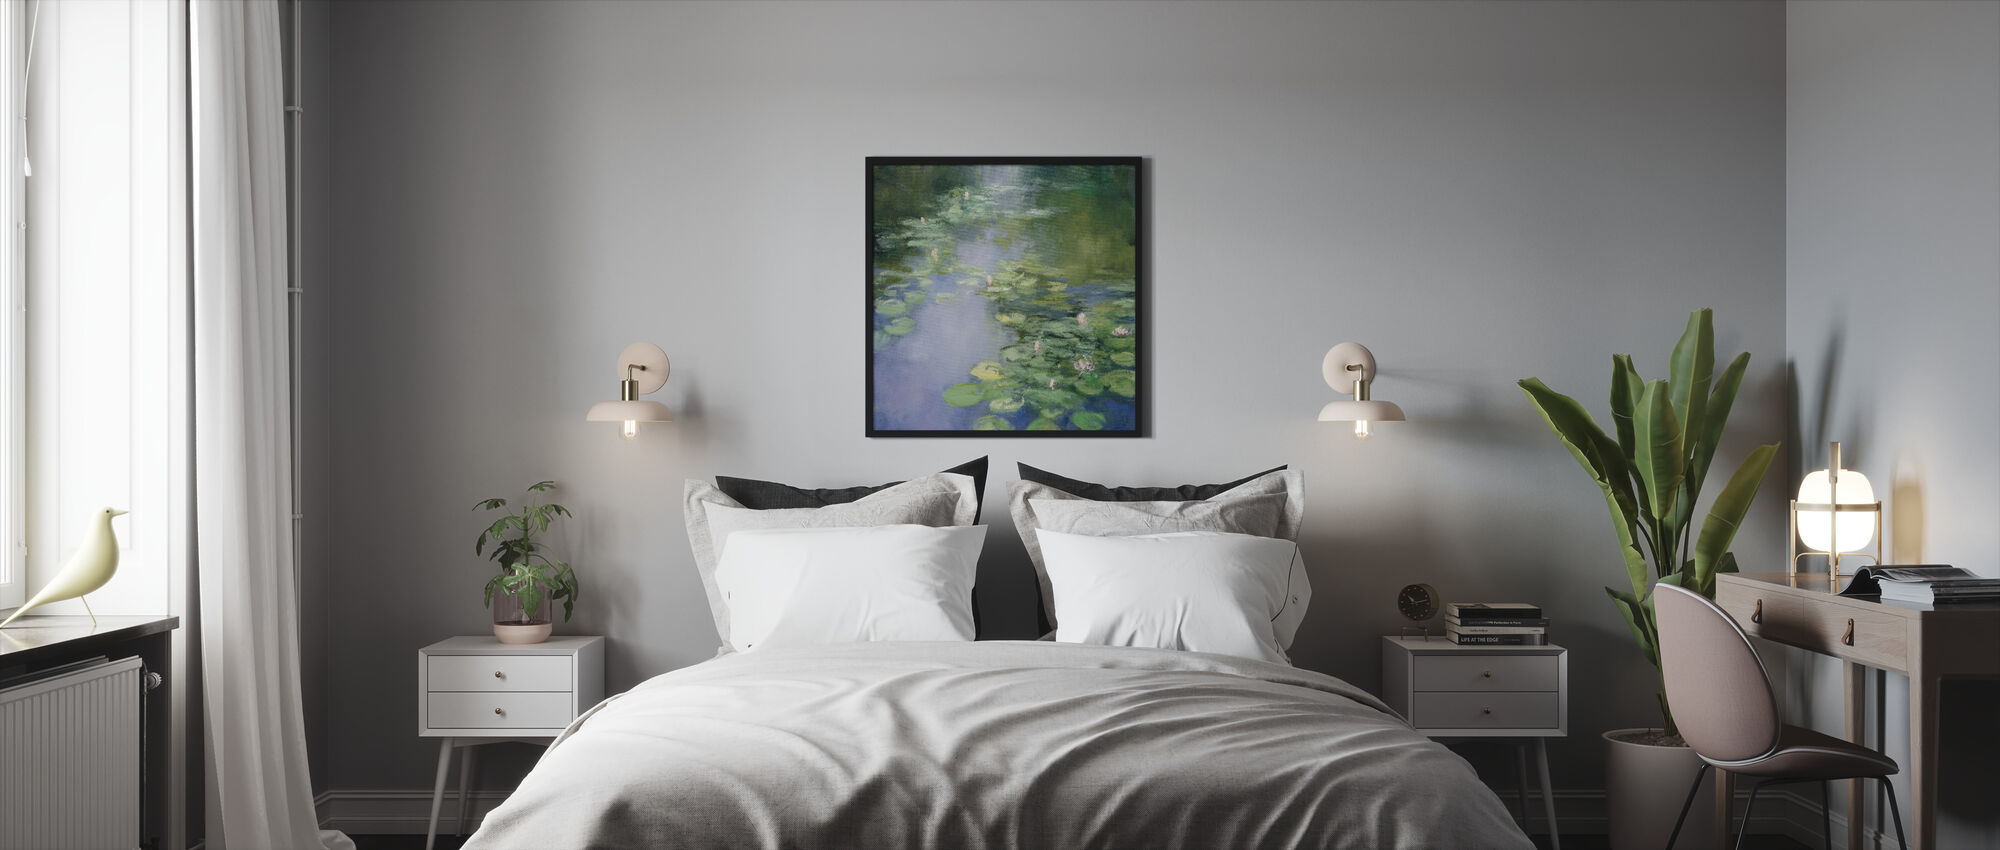 Blue Lily II - Framed print - Bedroom